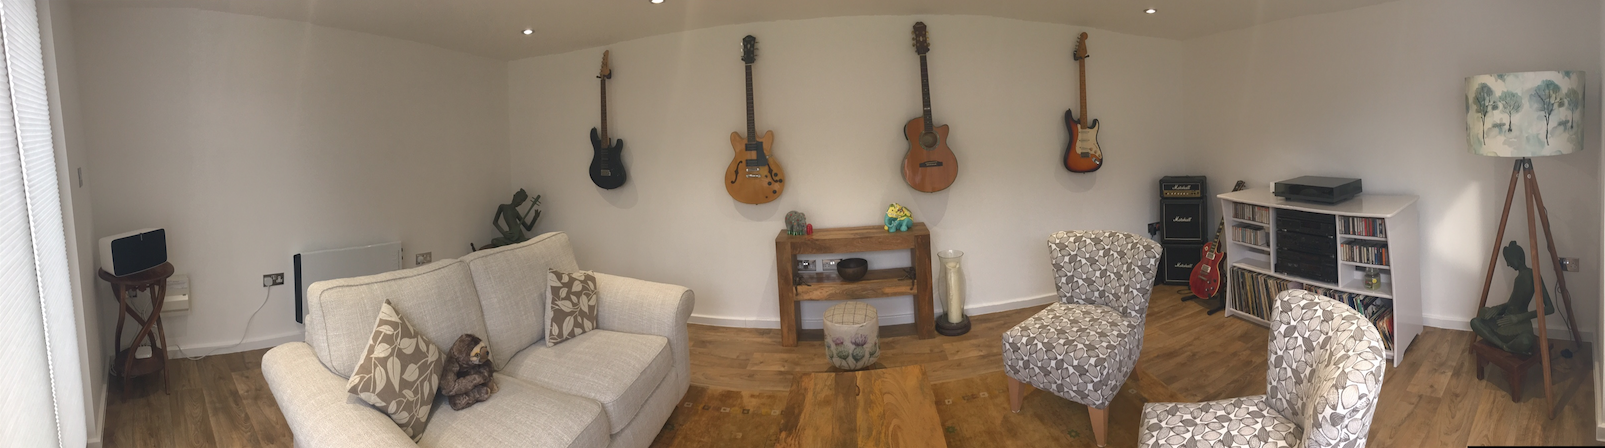 garden room music studio, garden rooms warrington